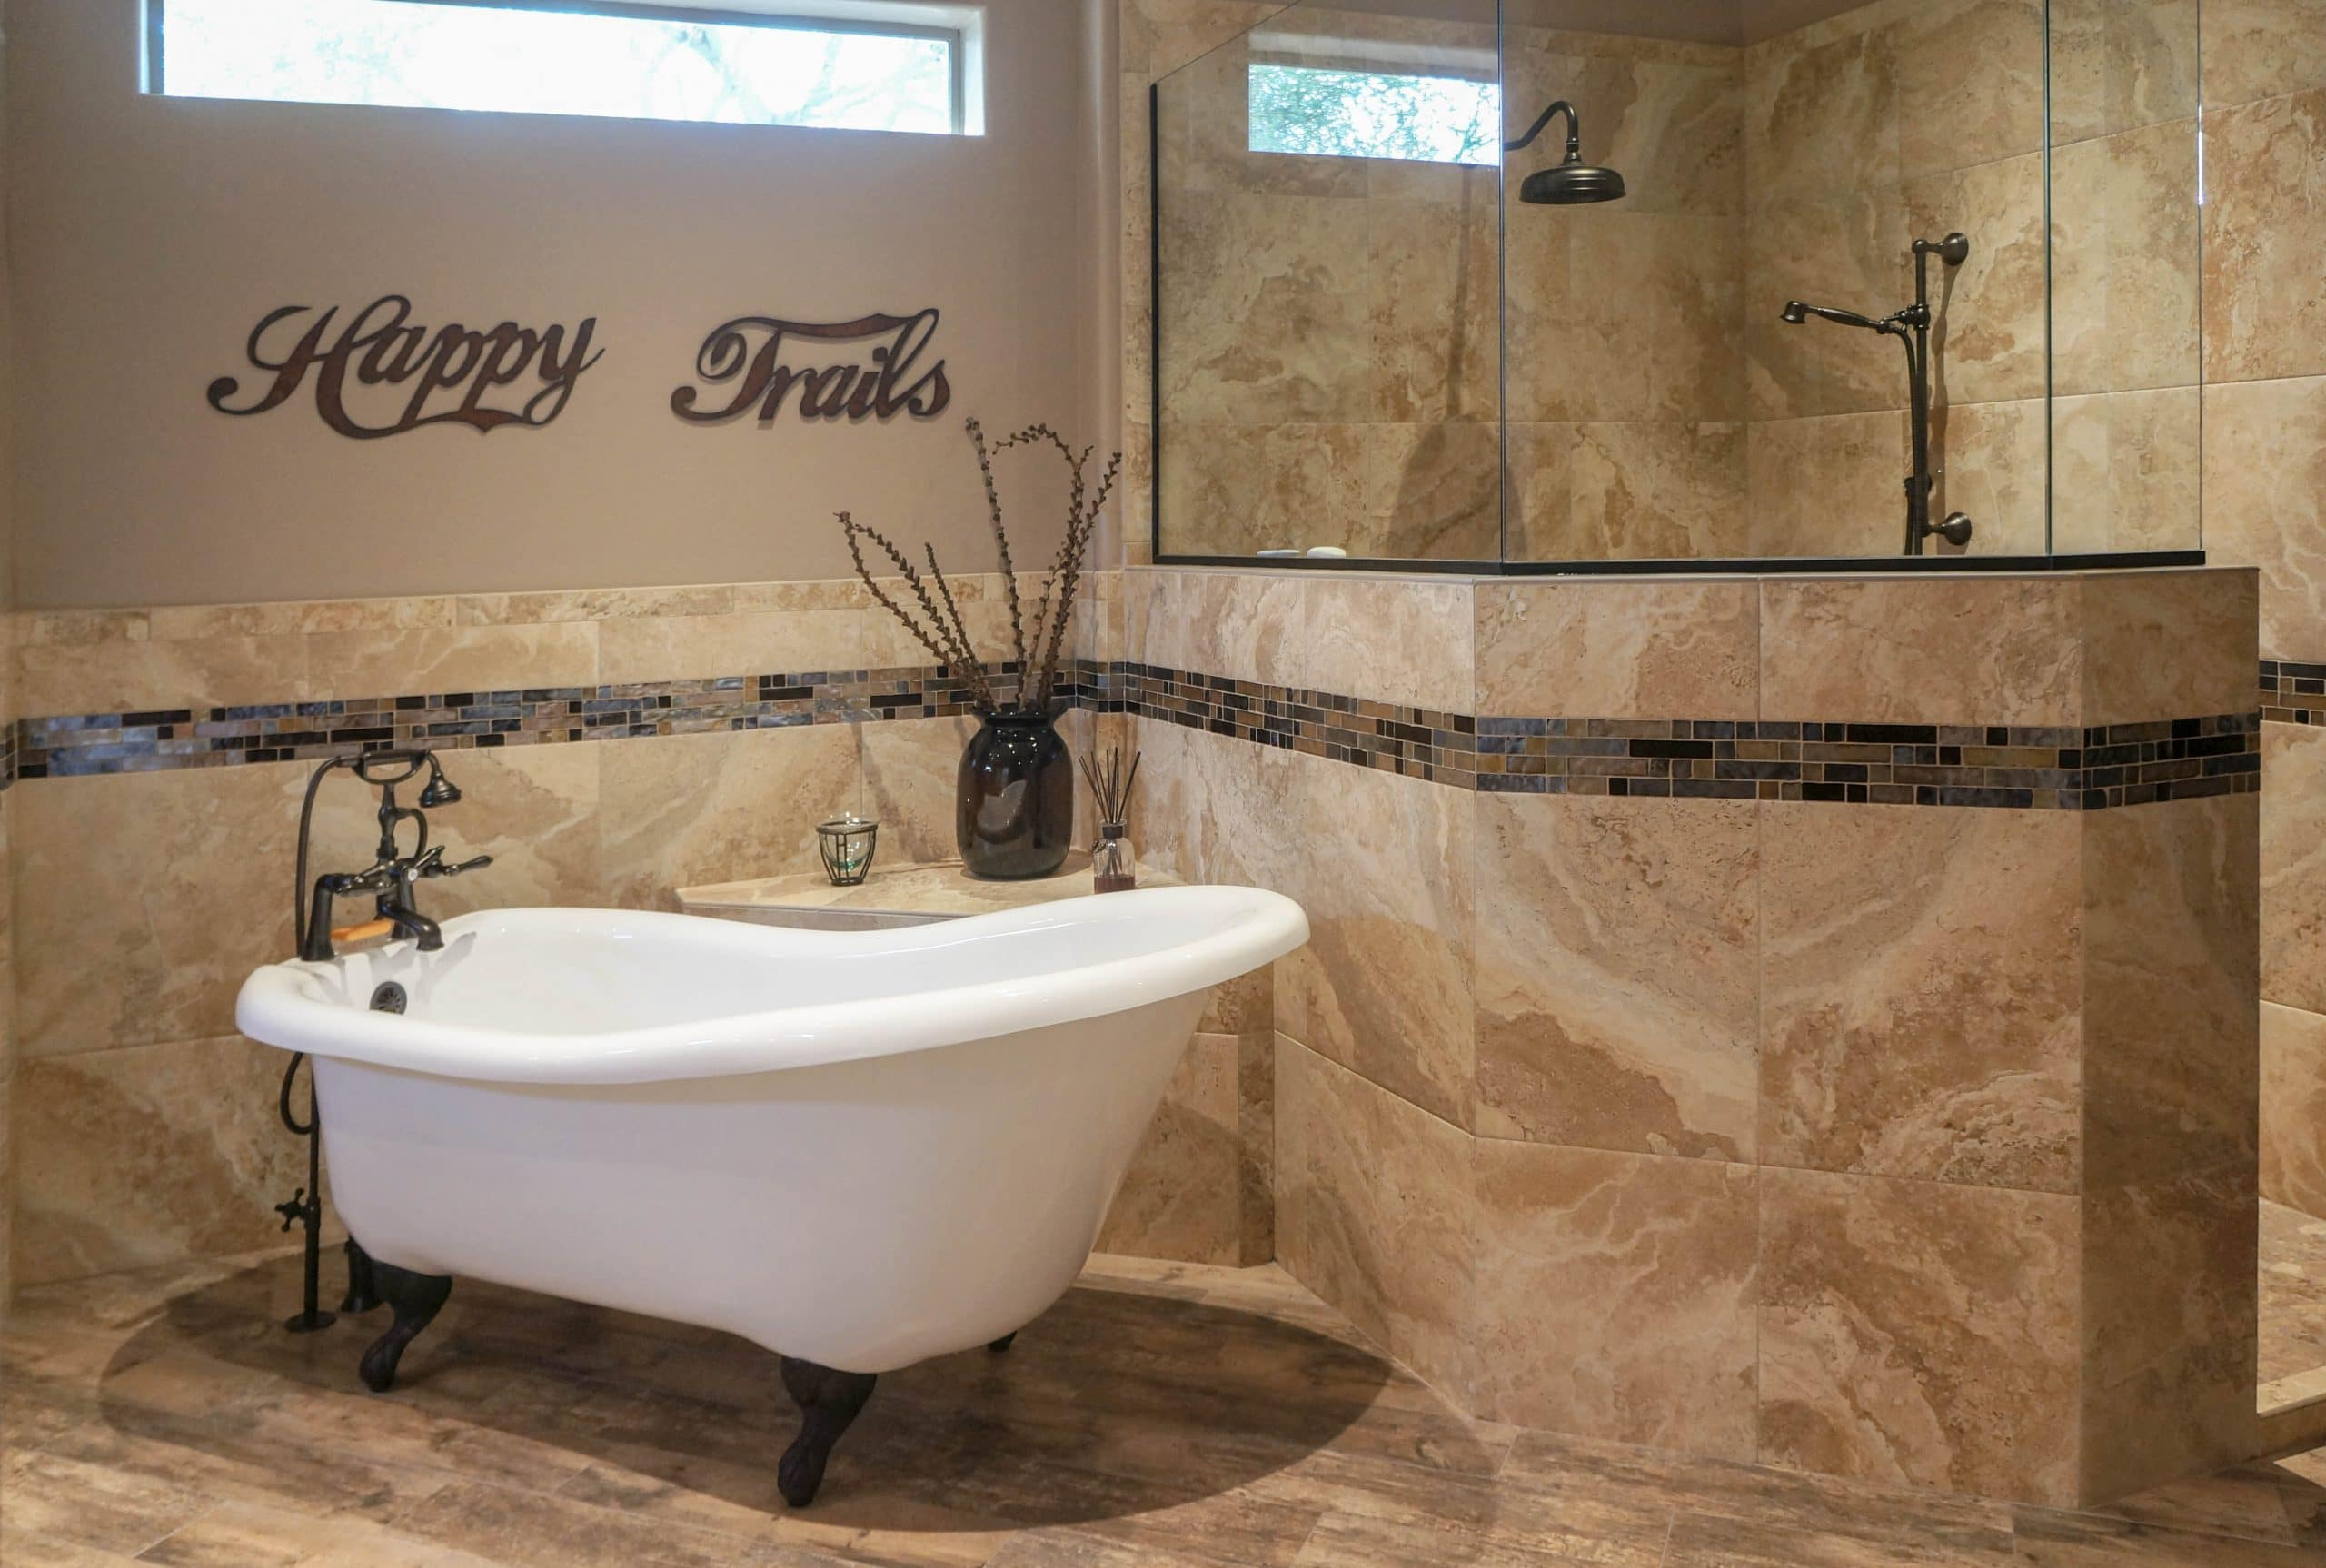 Local Remodeling Contractors Kitchen Bathroom Remodeling Designers - Bathroom remodeling clear lake texas